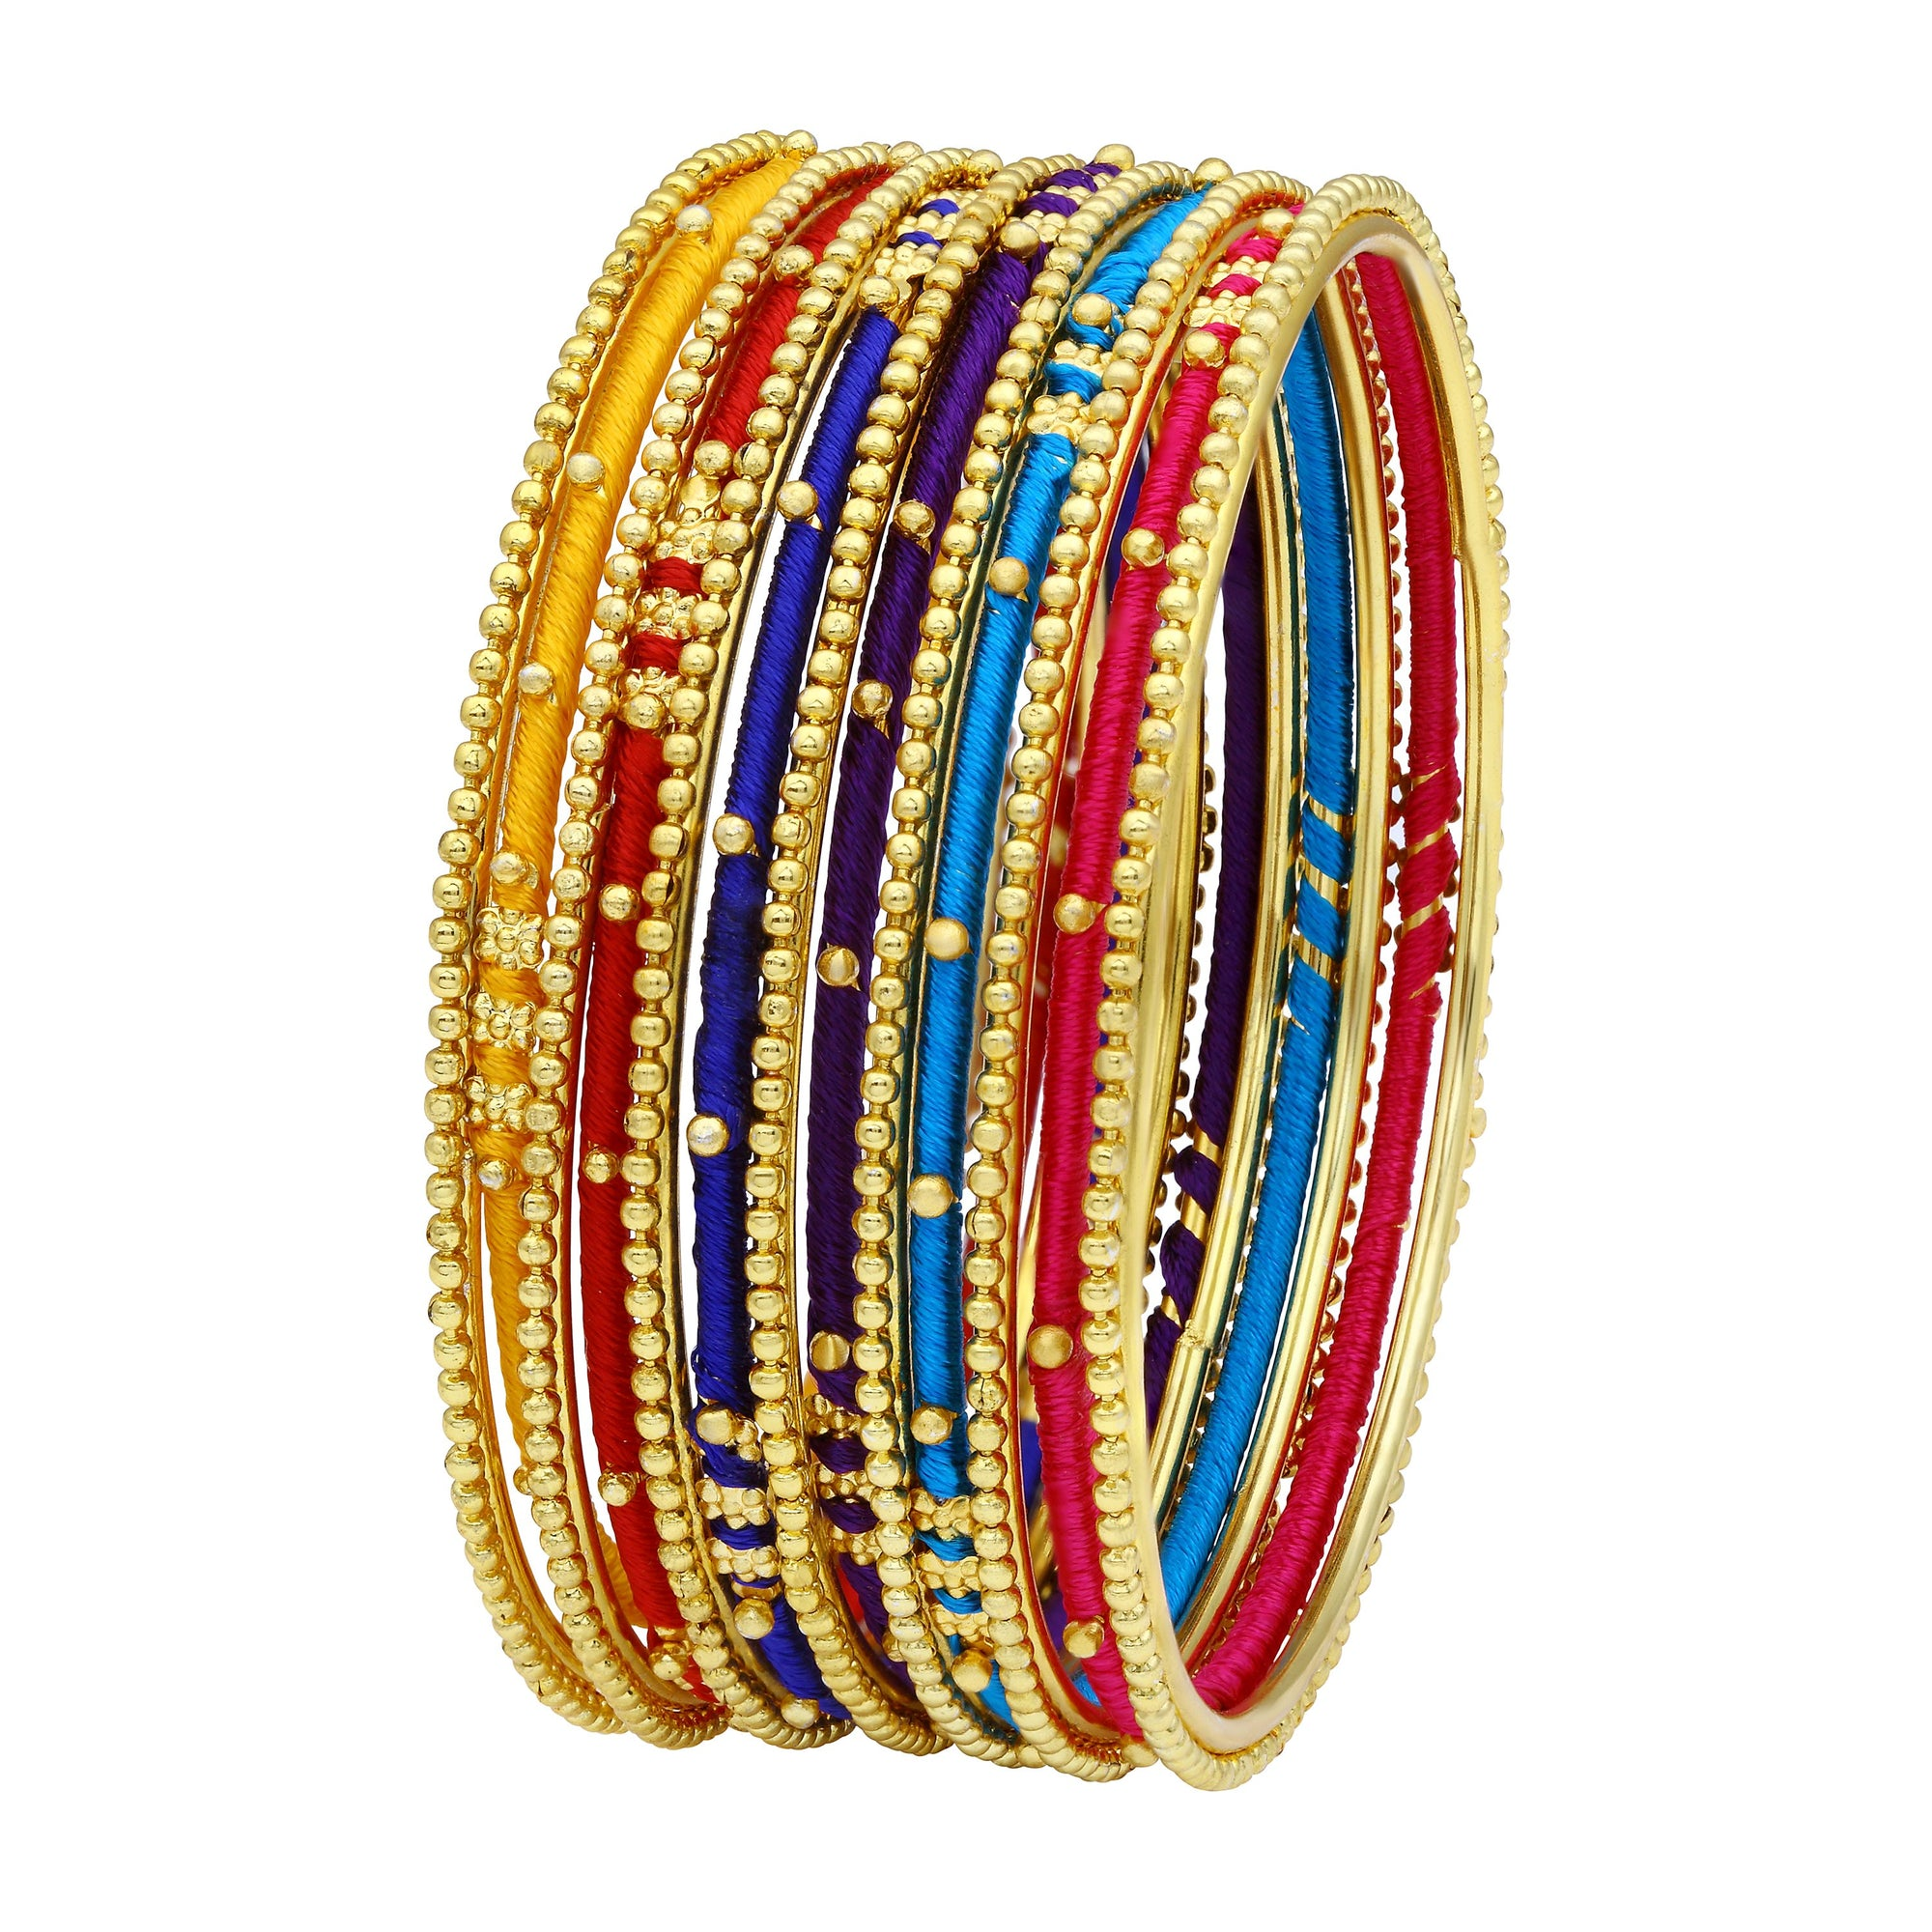 Asmitta Jewellery Gold Alloy Bangle Set -BG141